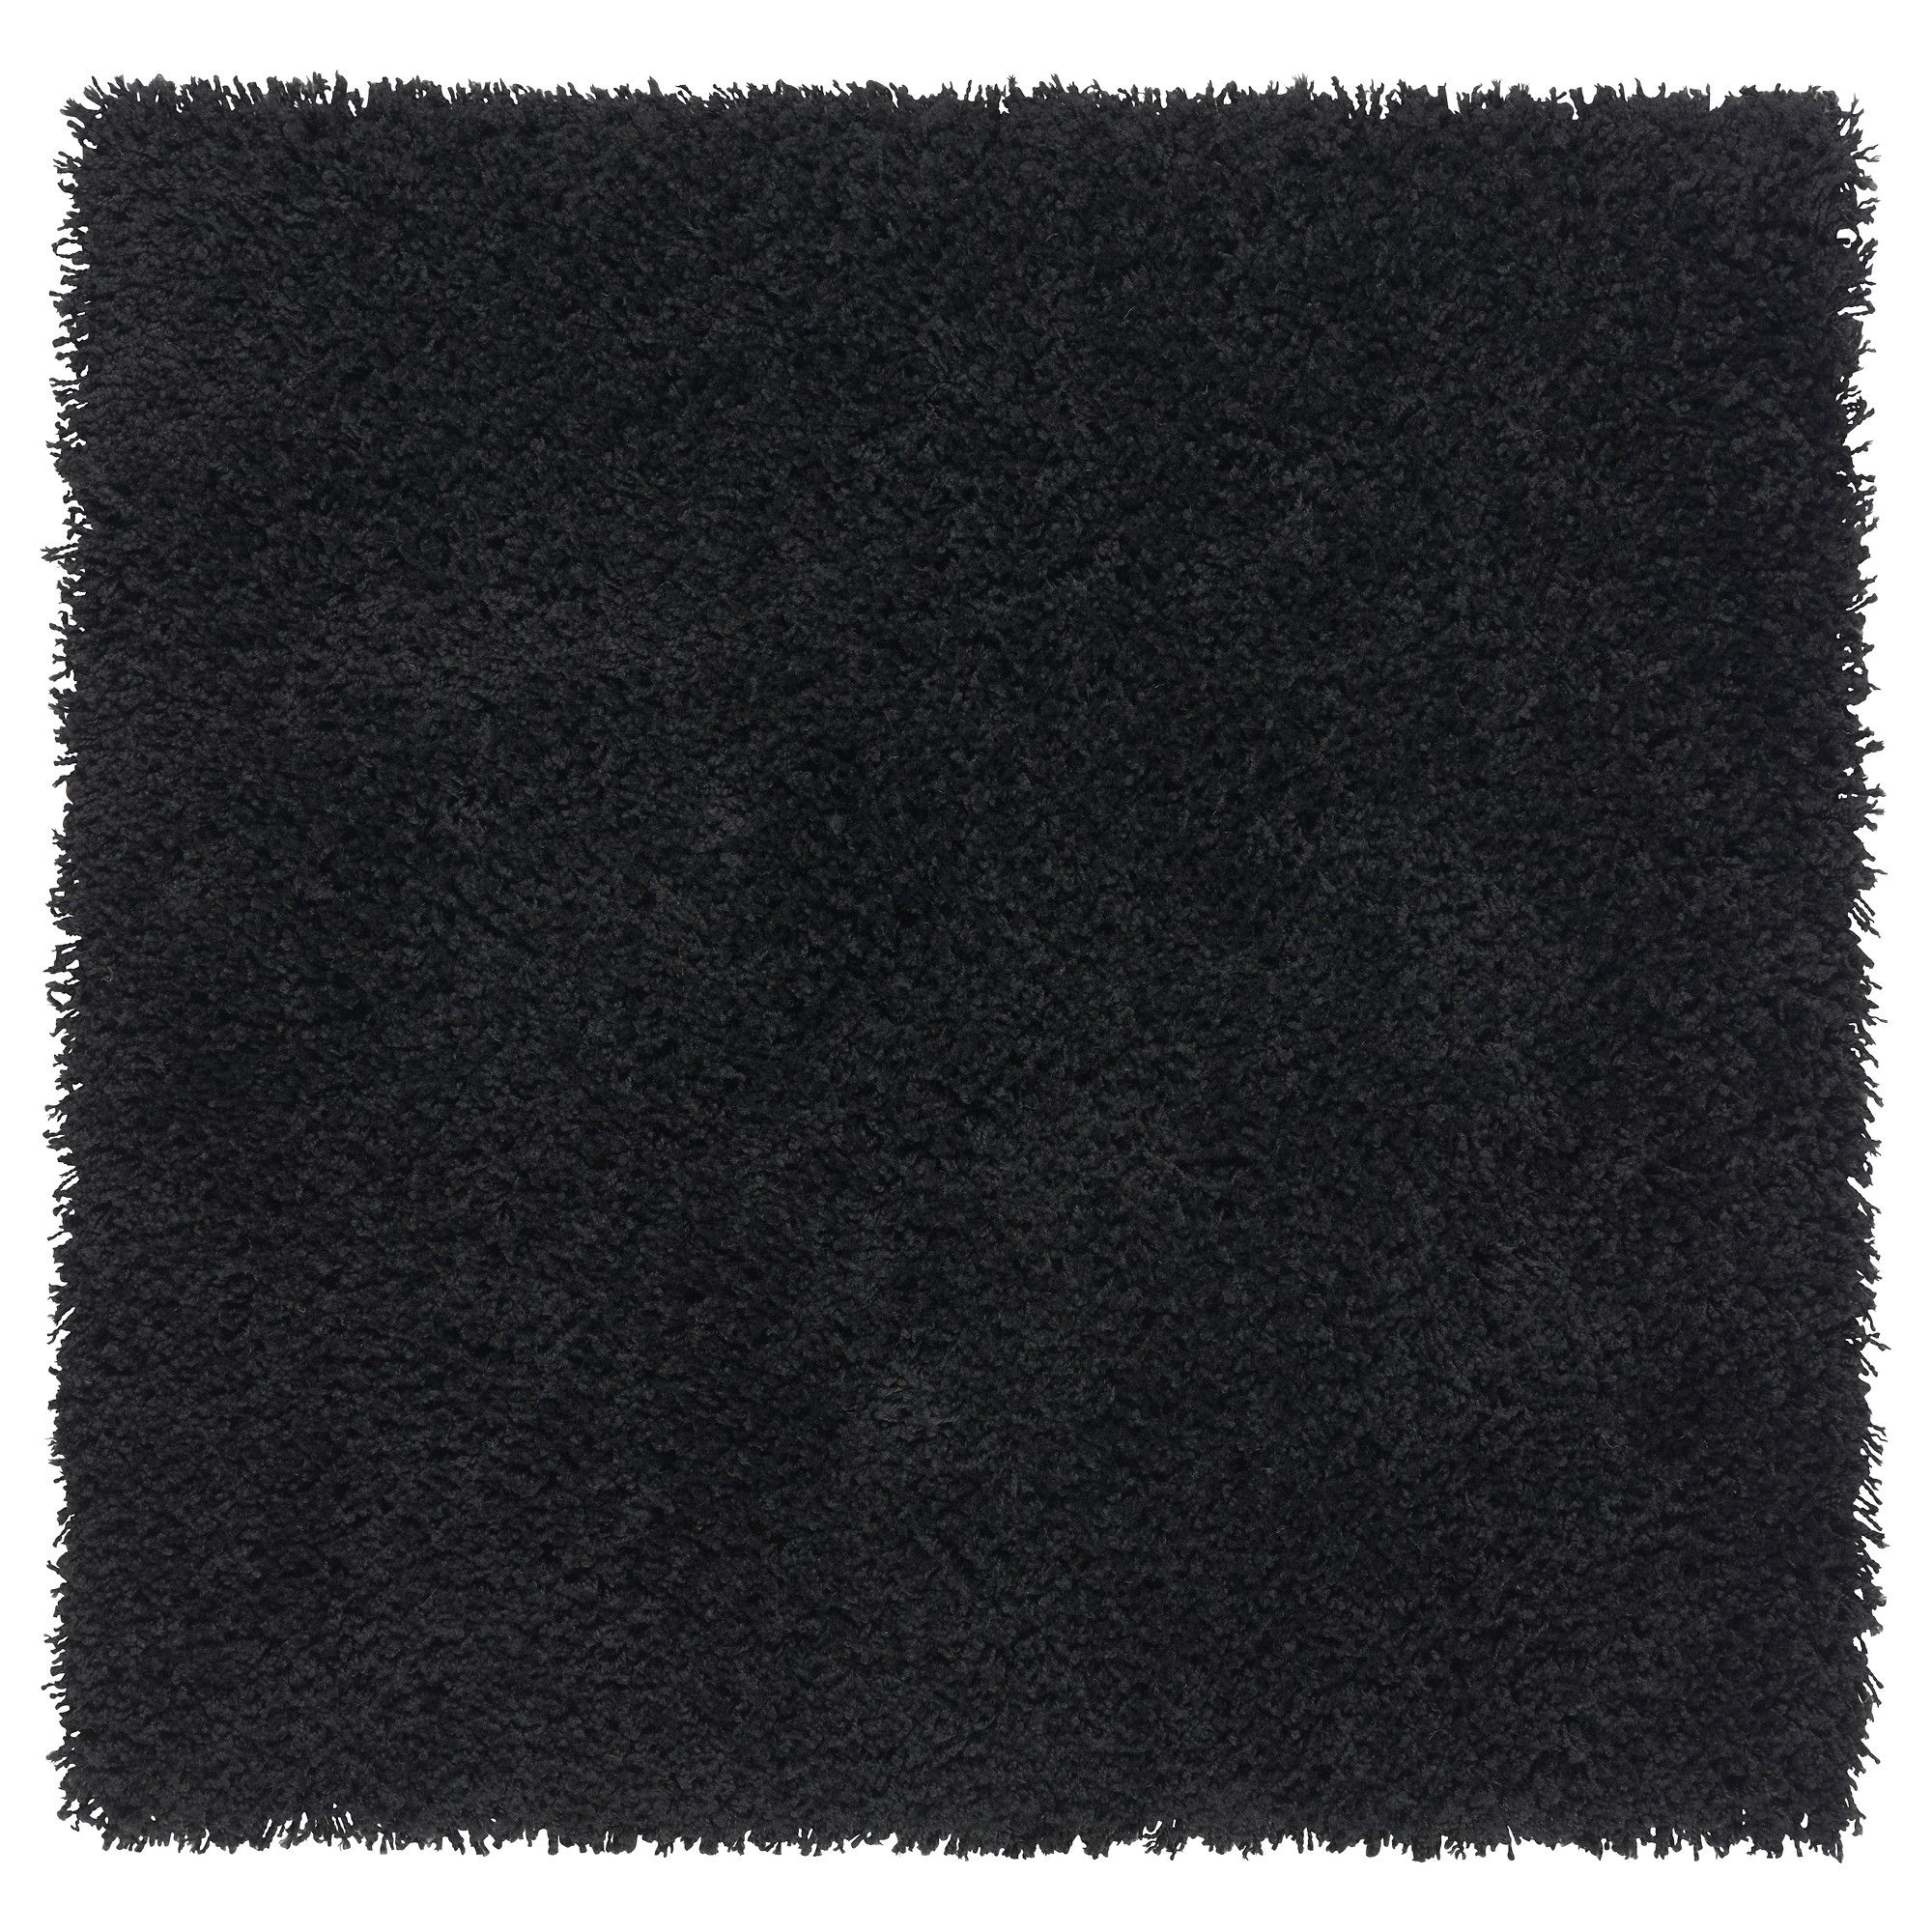 Ikea Teppich 80x80 Hampen Rug High Pile Black Ikea For The Office Le